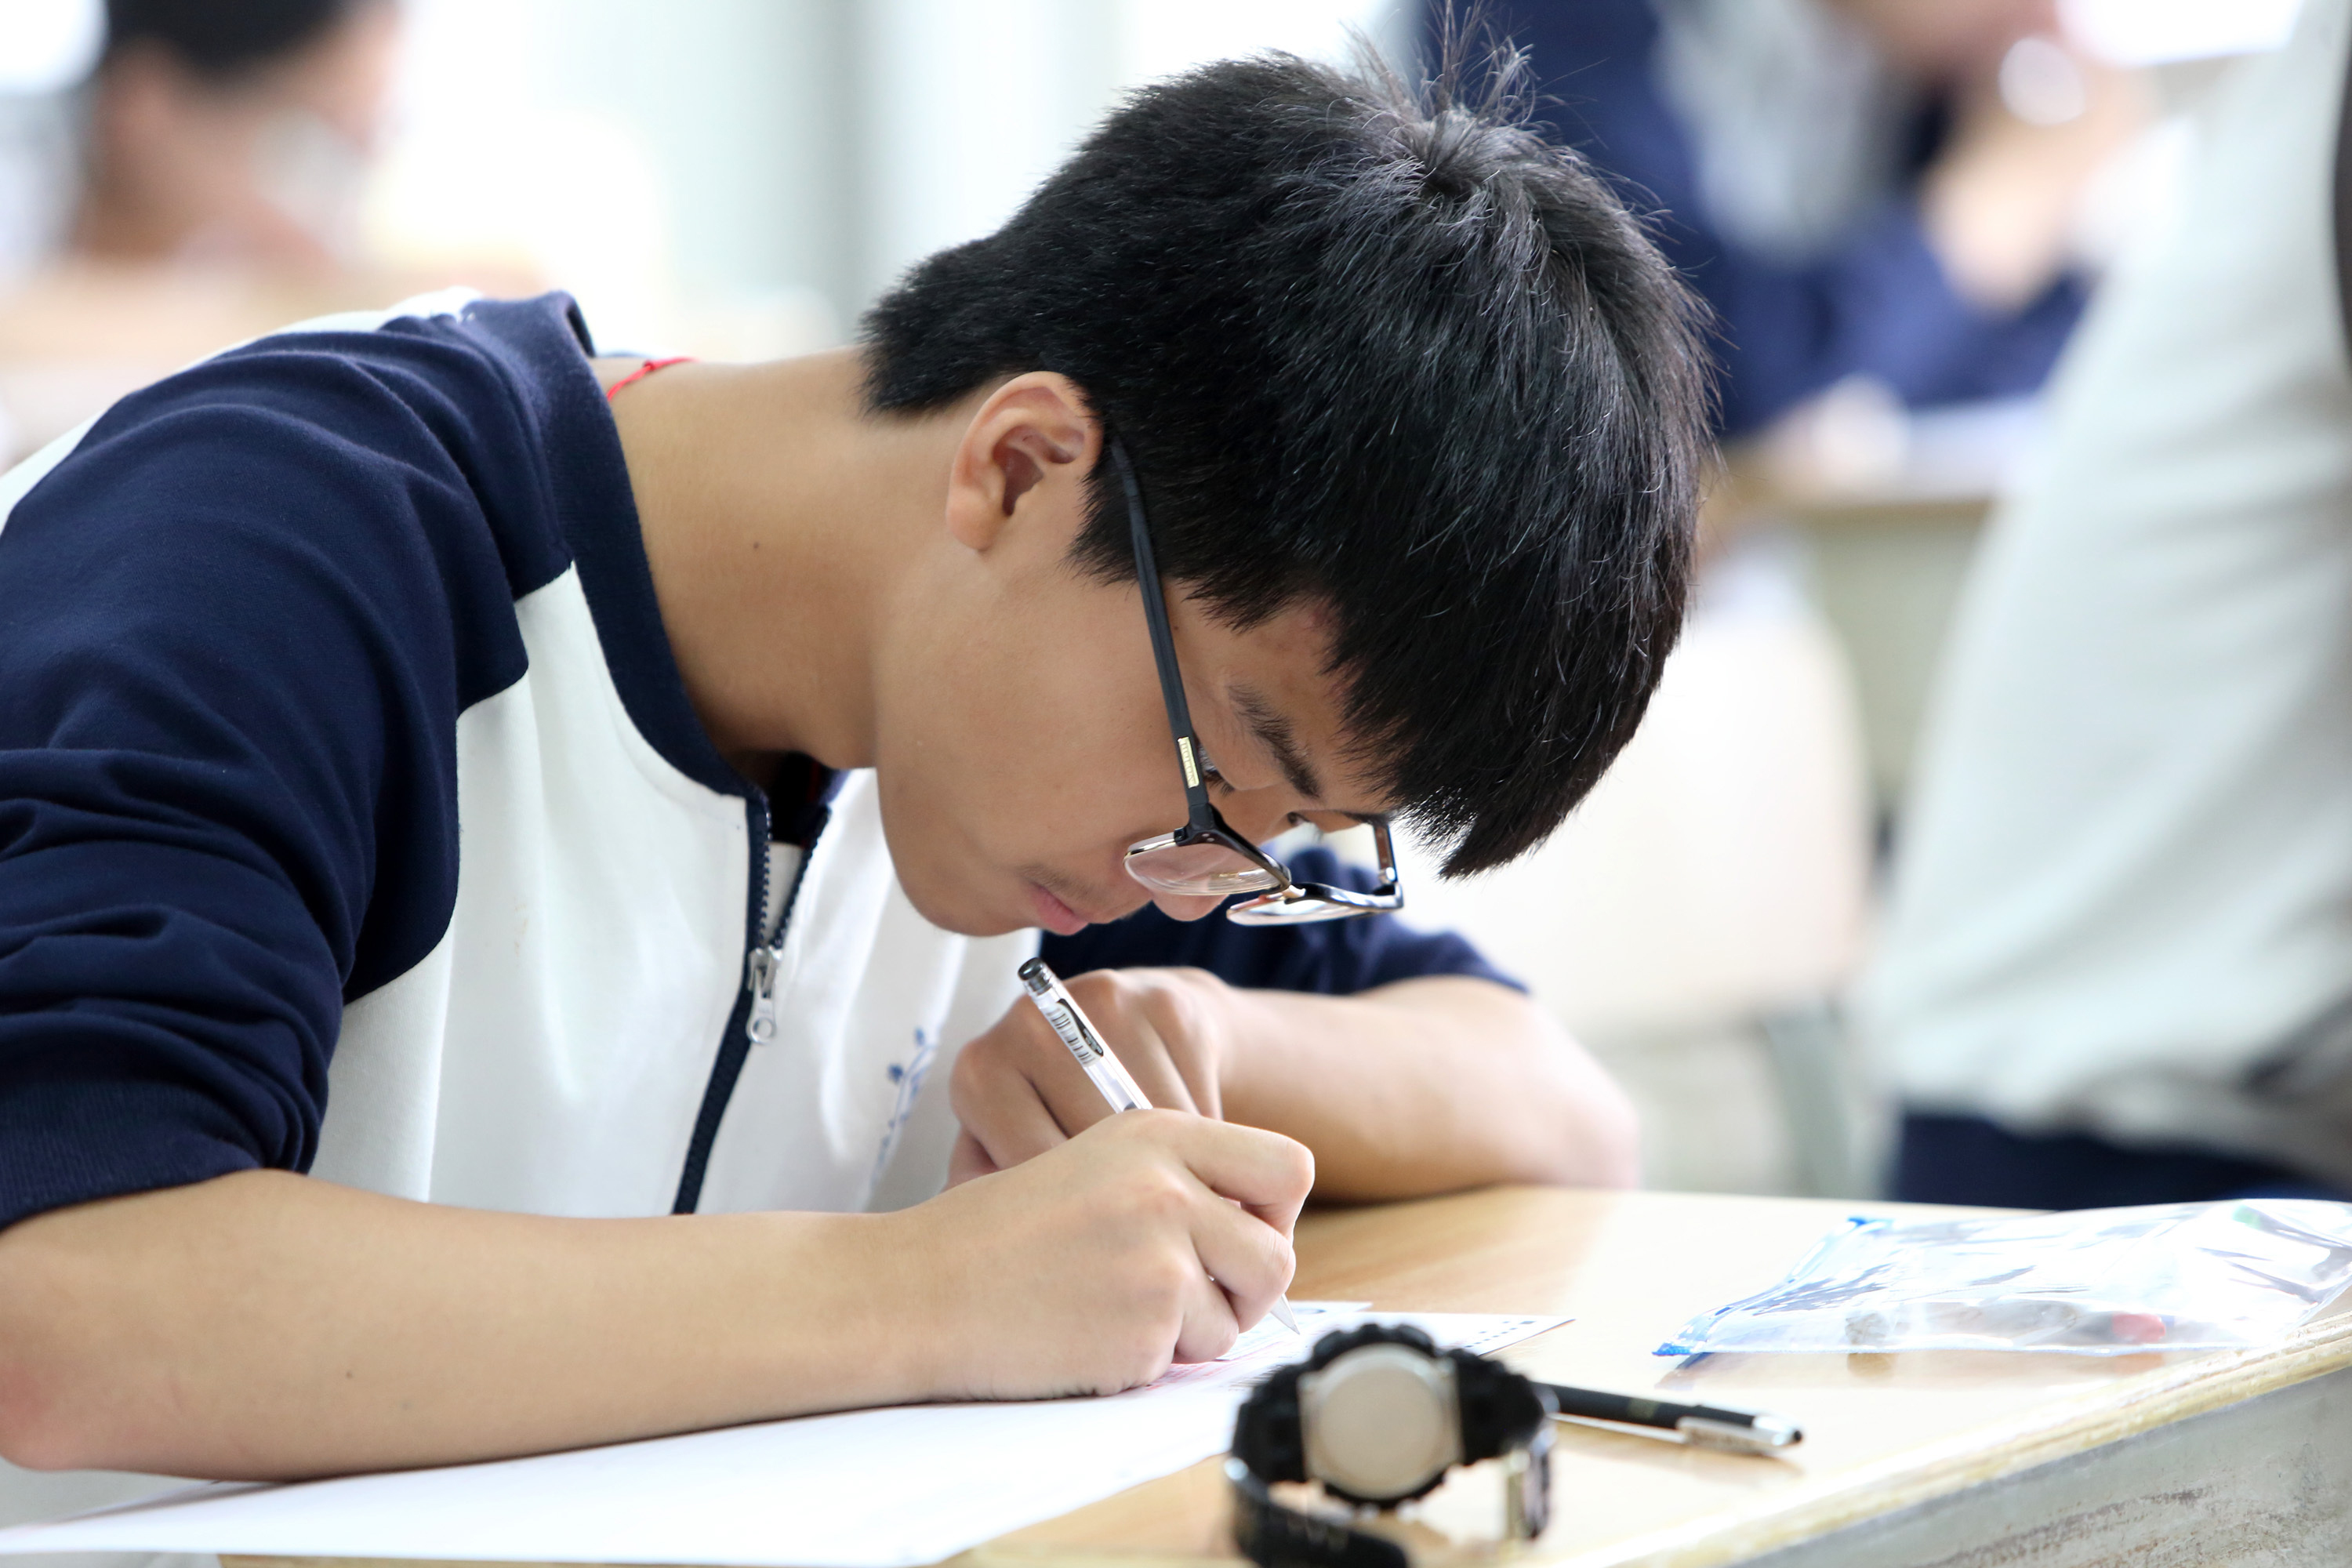 An examinee writes during the Gaokao at the exam site on June 7, 2016 in Shaoxing, Zhejiang Province of China.